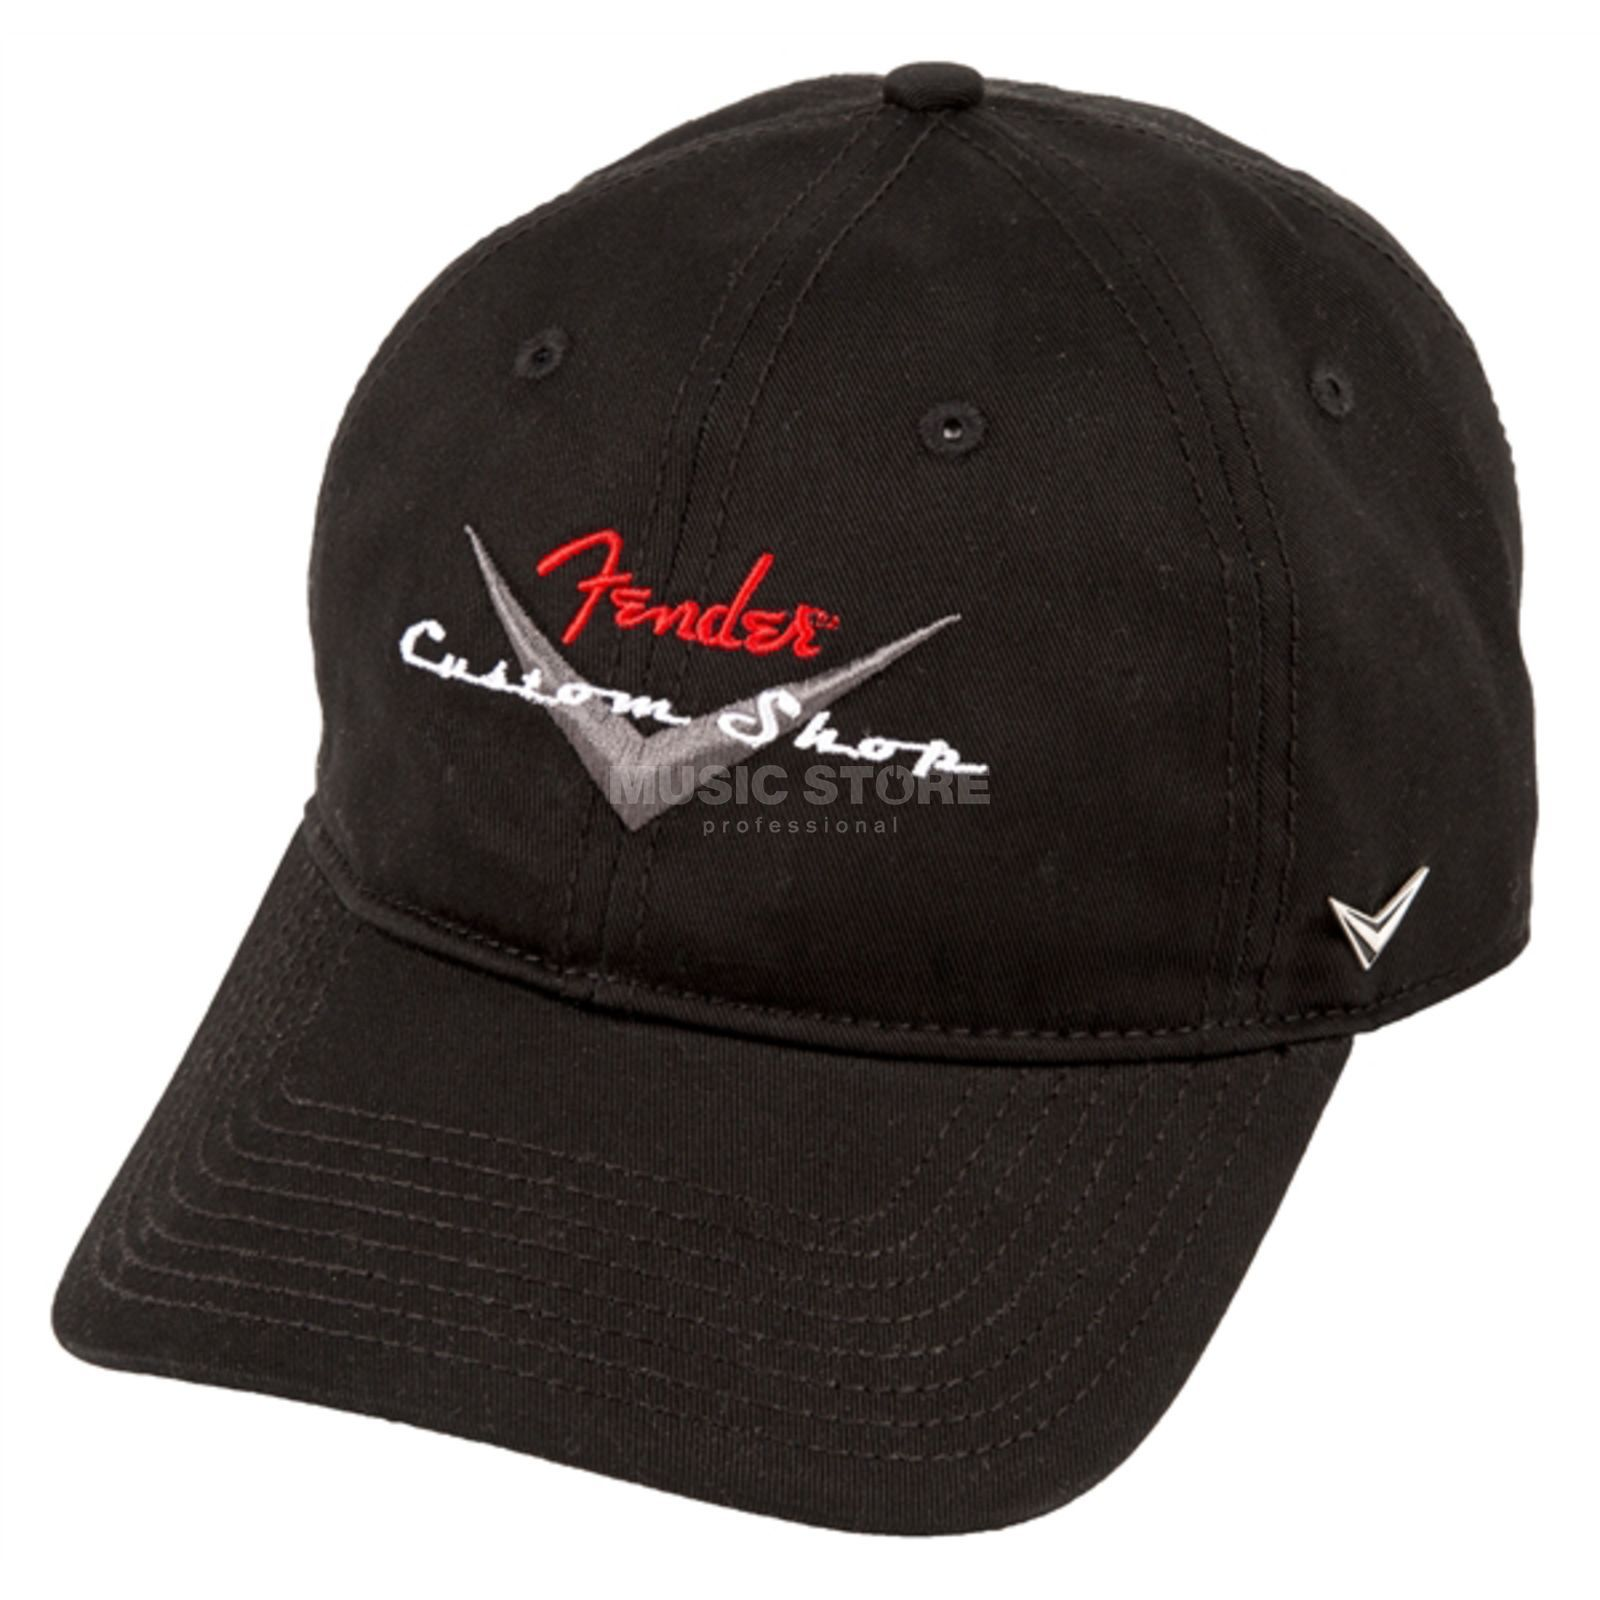 Fender Custom Shop Baseball Hat Black Zdjęcie produktu